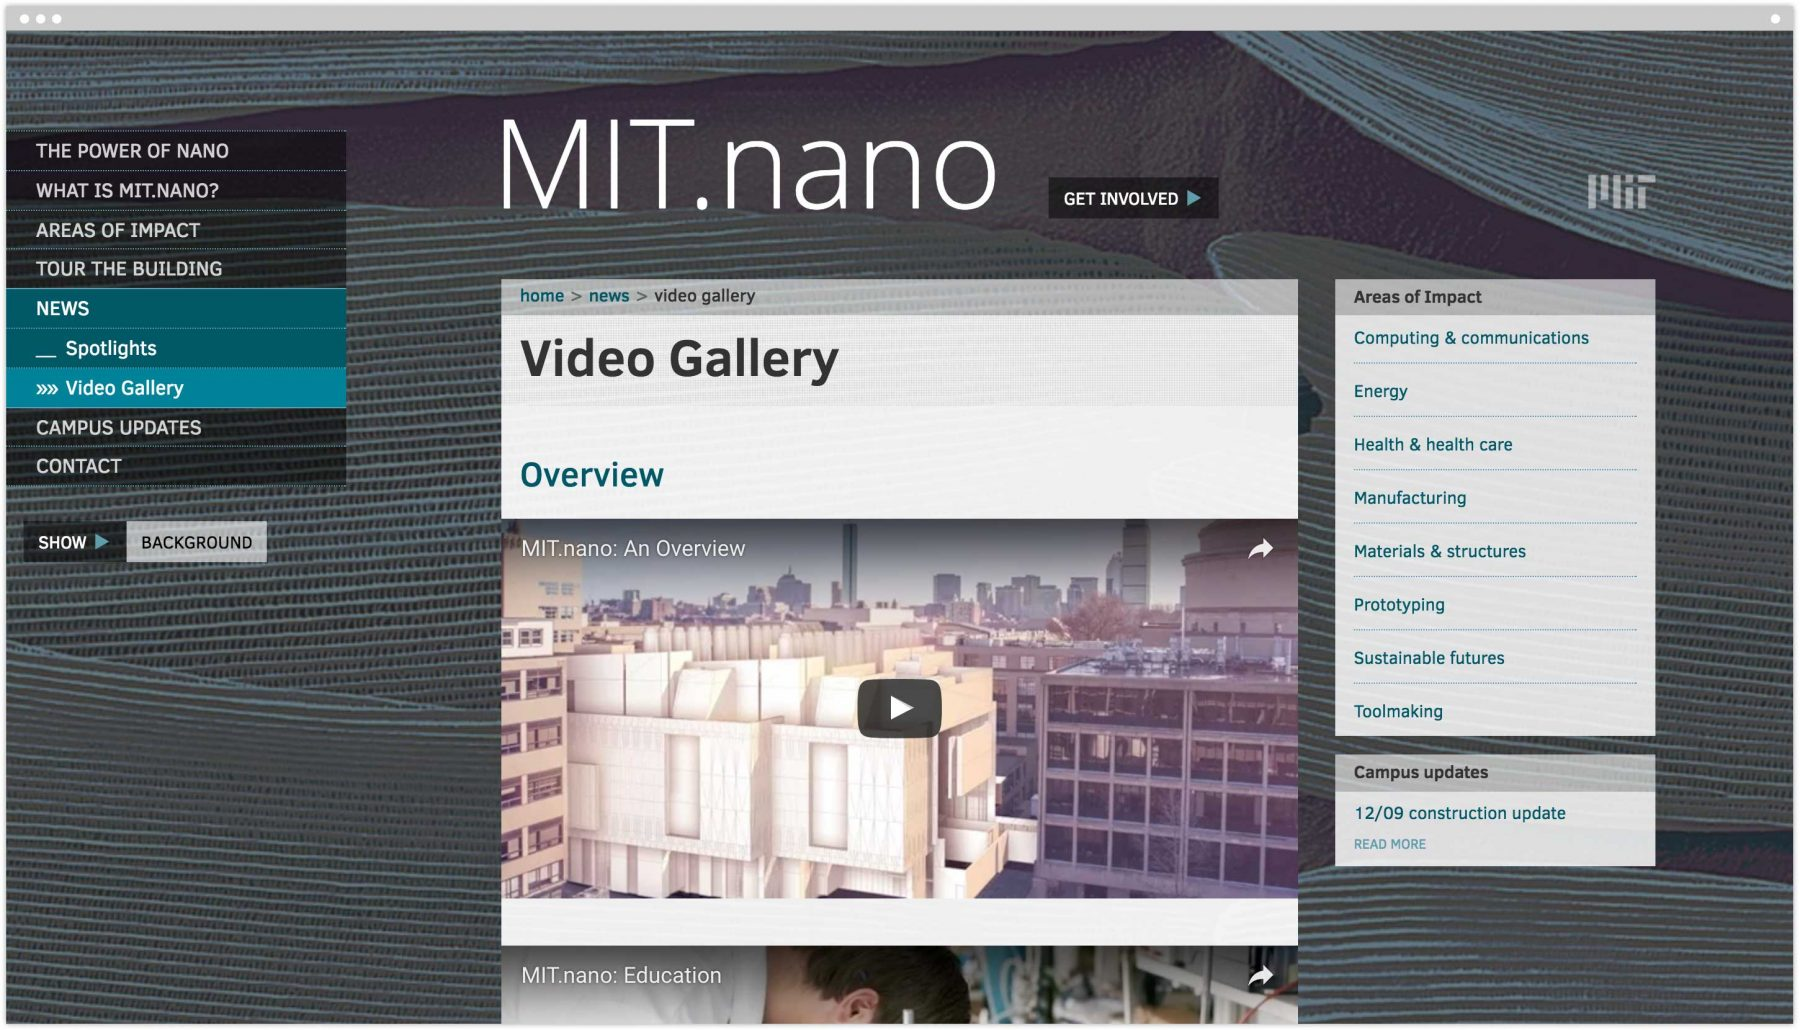 MIT.nano Video Gallery interior page